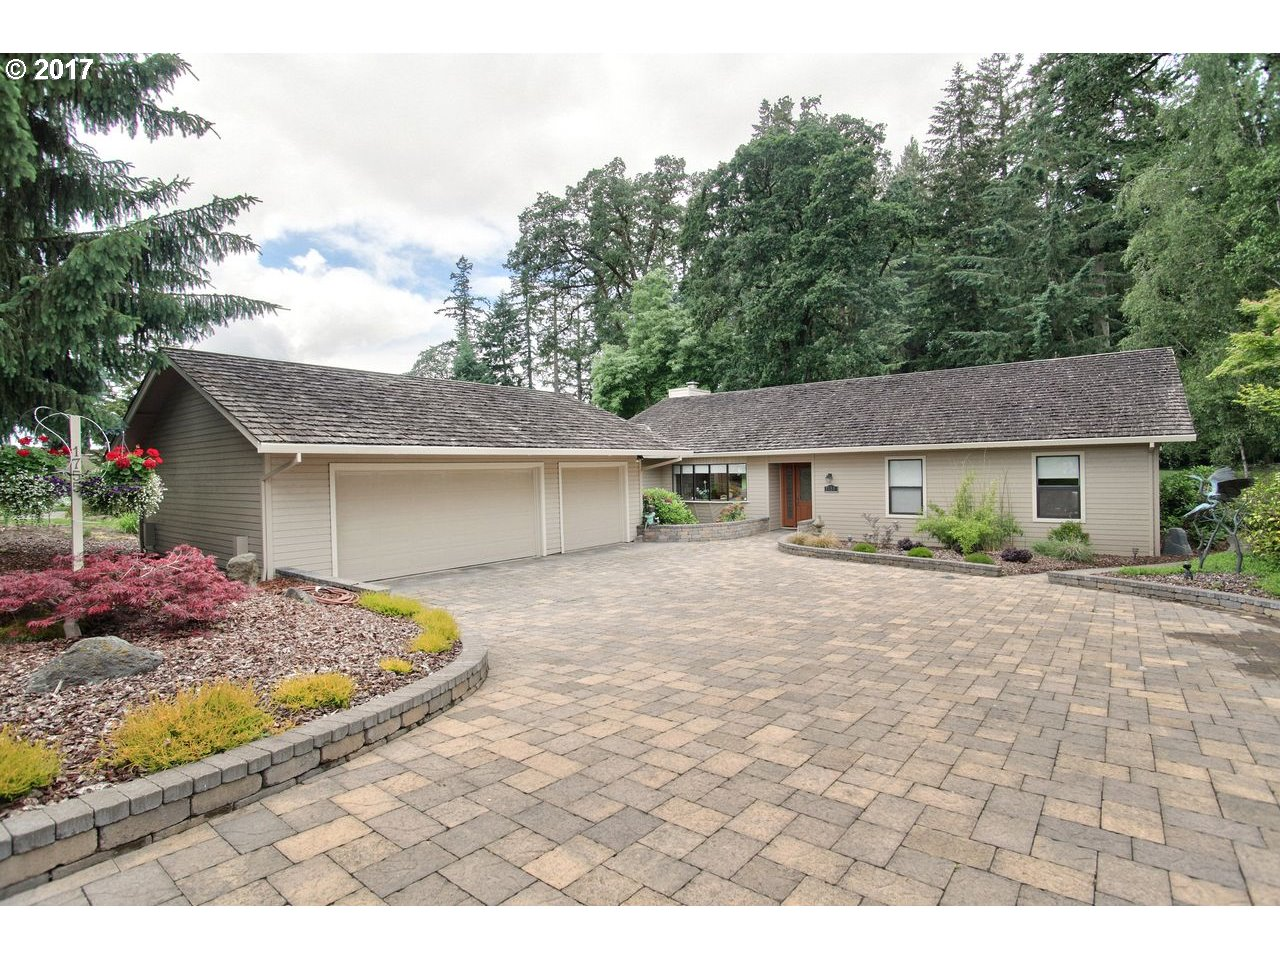 1755 NW DORAL ST, McMinnville, OR 97128